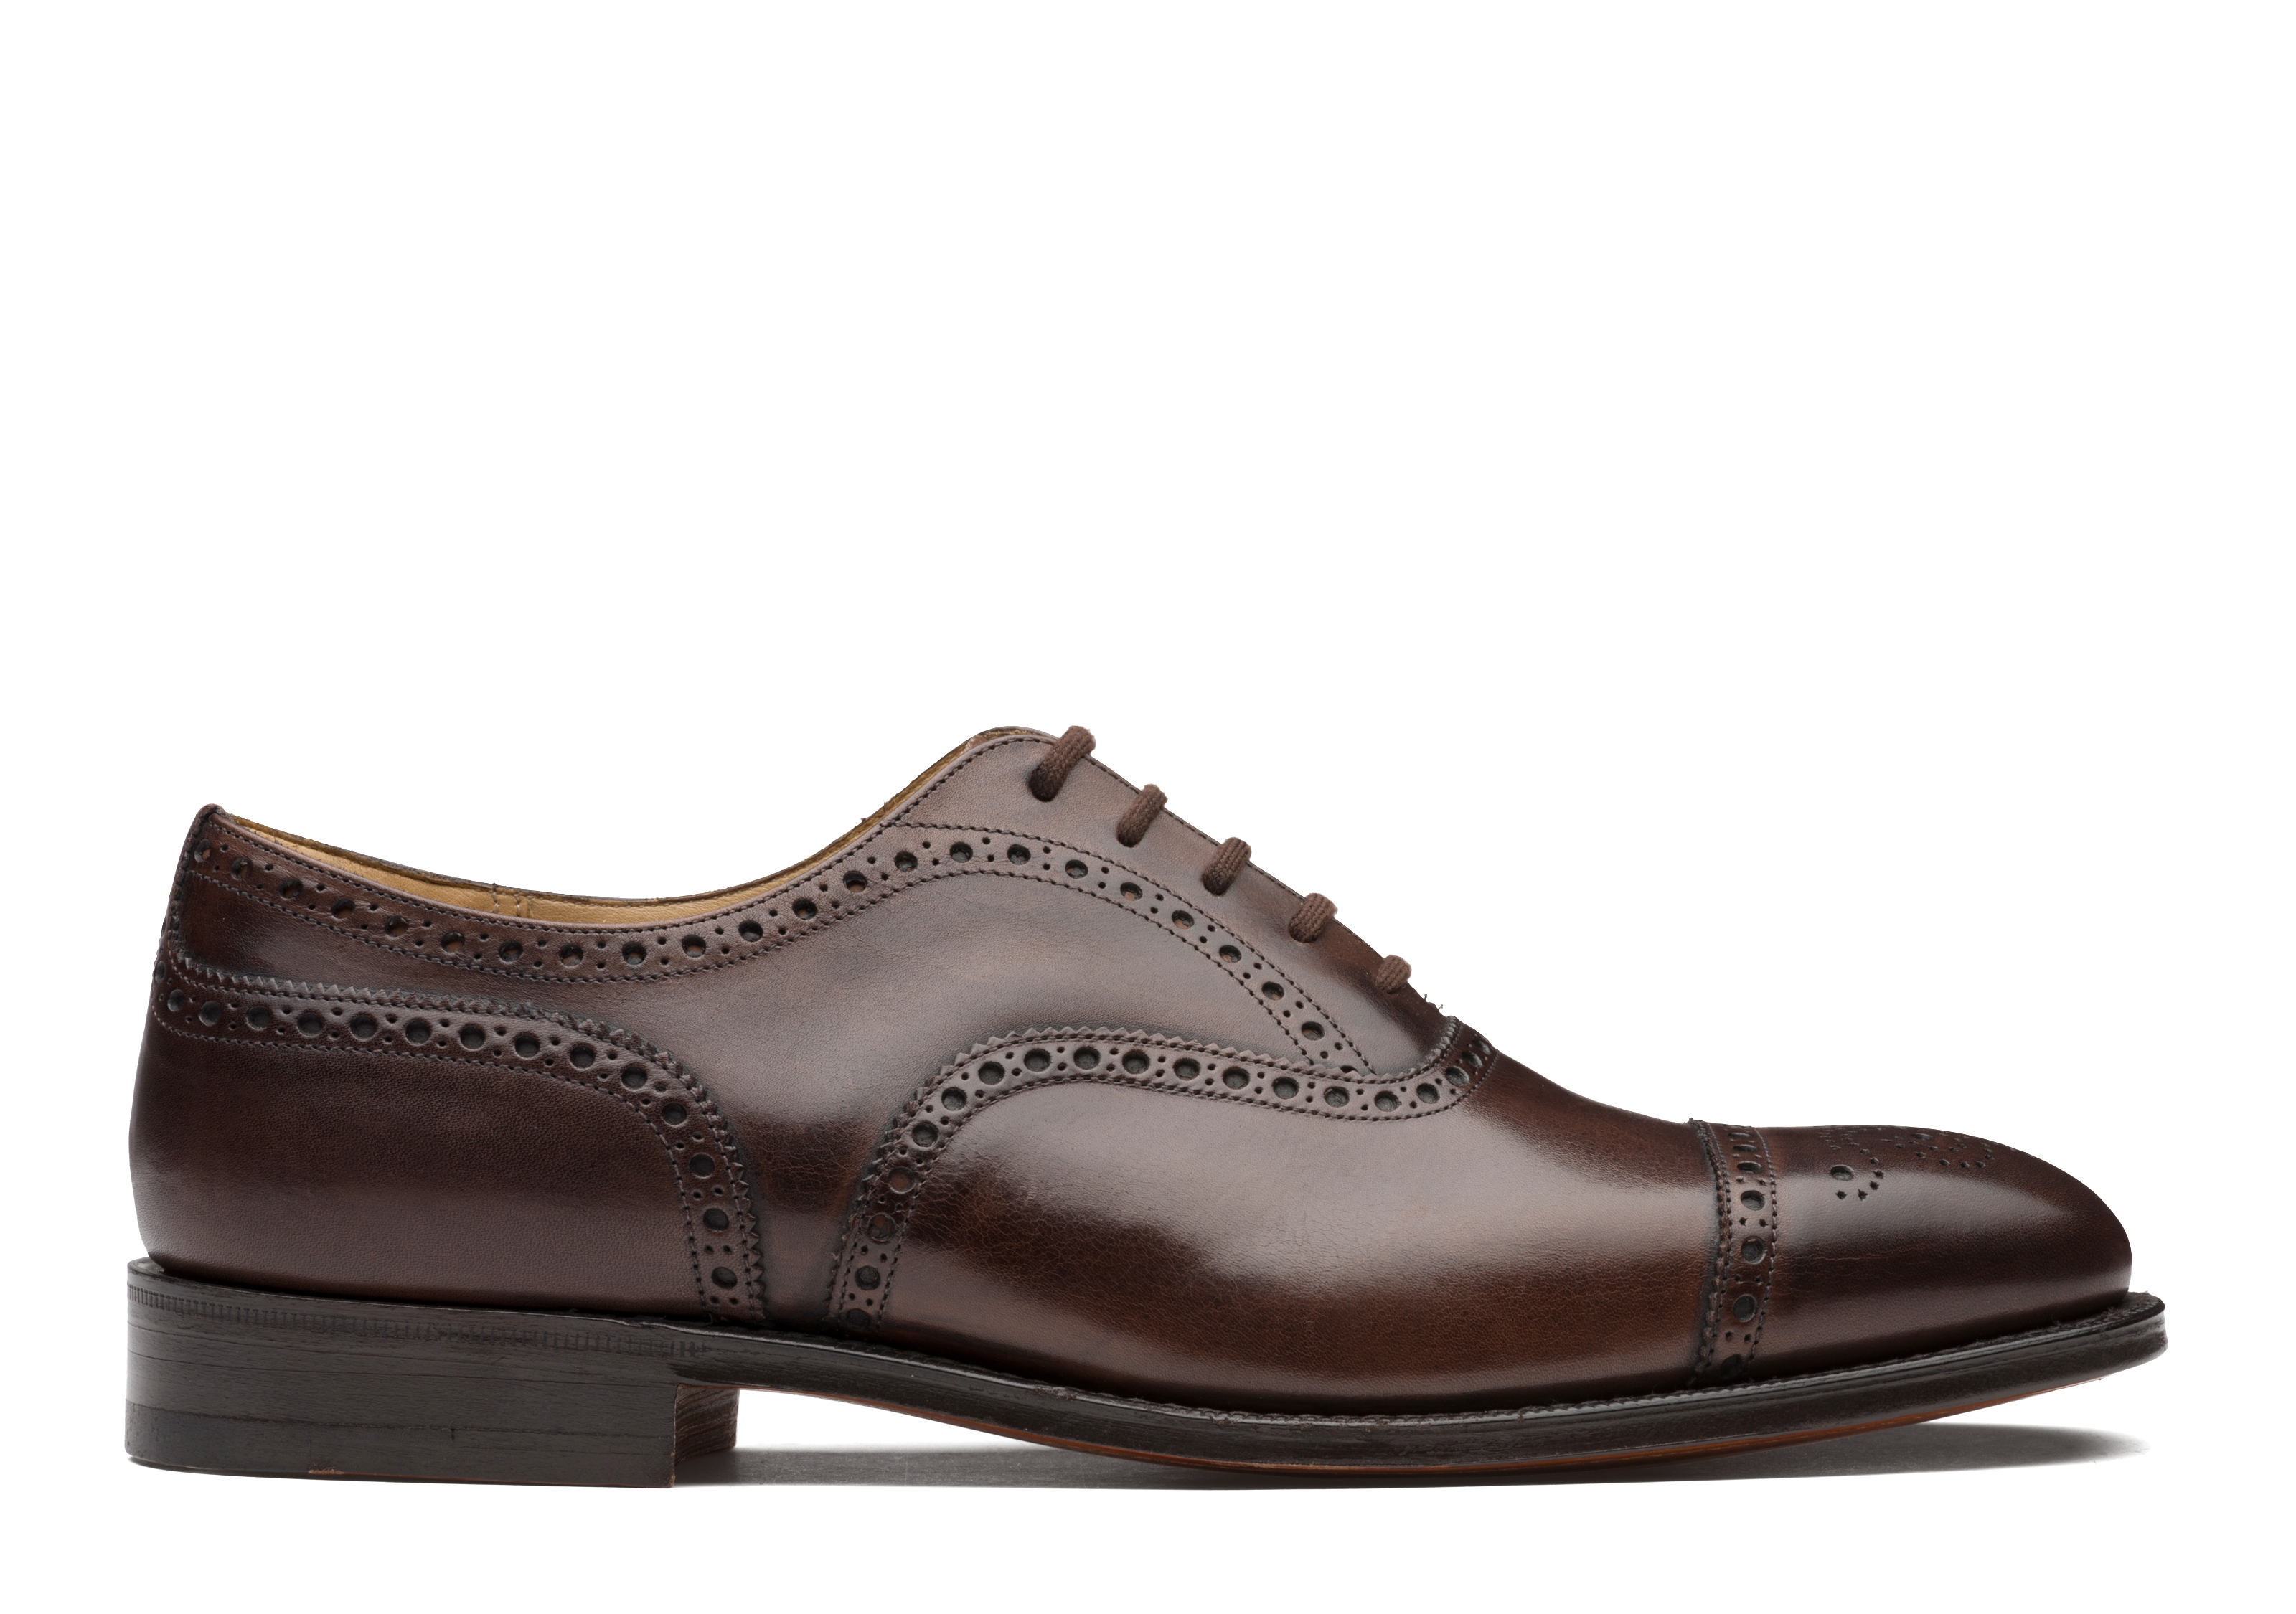 880ce8e80247 Brogues Le Style Homme Church s